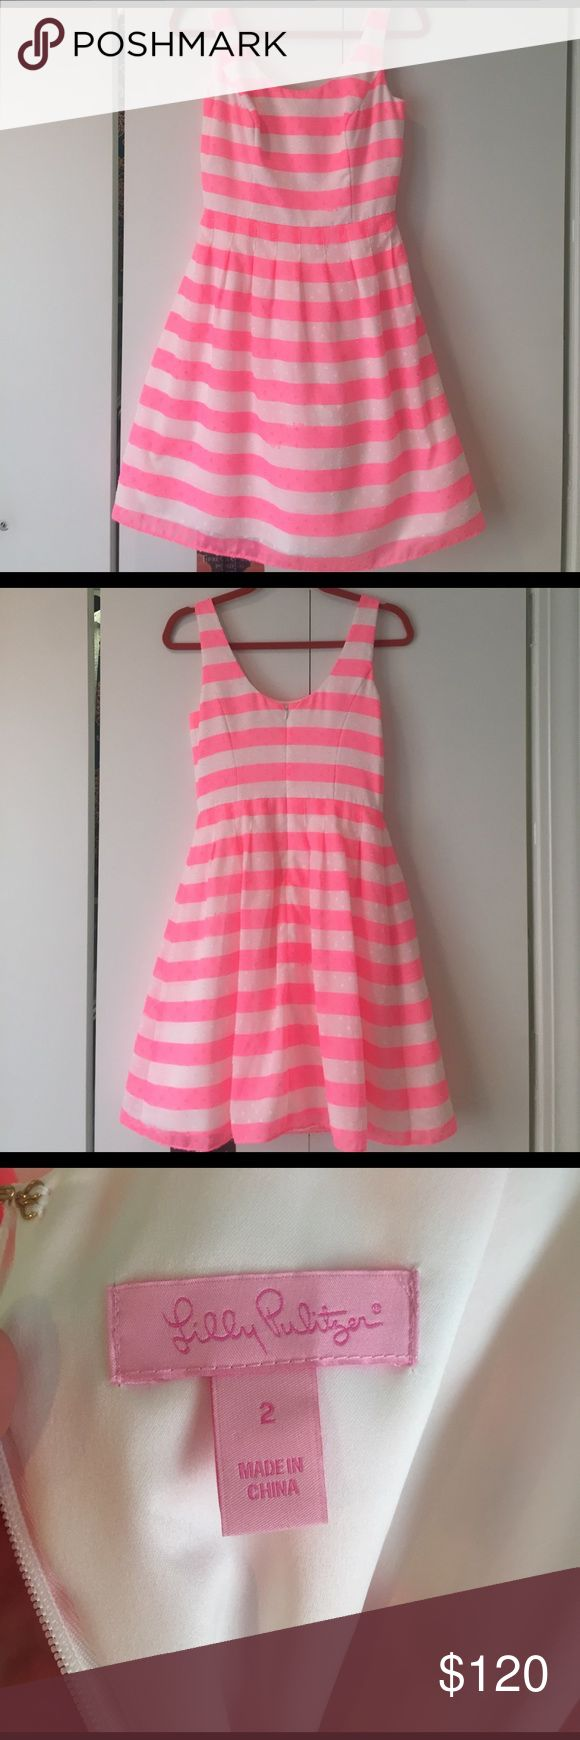 Lilly Pulitzer Striped Dress. Unworn Stunning Lilly striped dress. Bright pink and white stripes with fun for texture detail. Never worn. Perfect condition. Soft stacked lining for fun volume. Perfect Easter or spring dress. Super high quality gem. Lilly Pulitzer Dresses